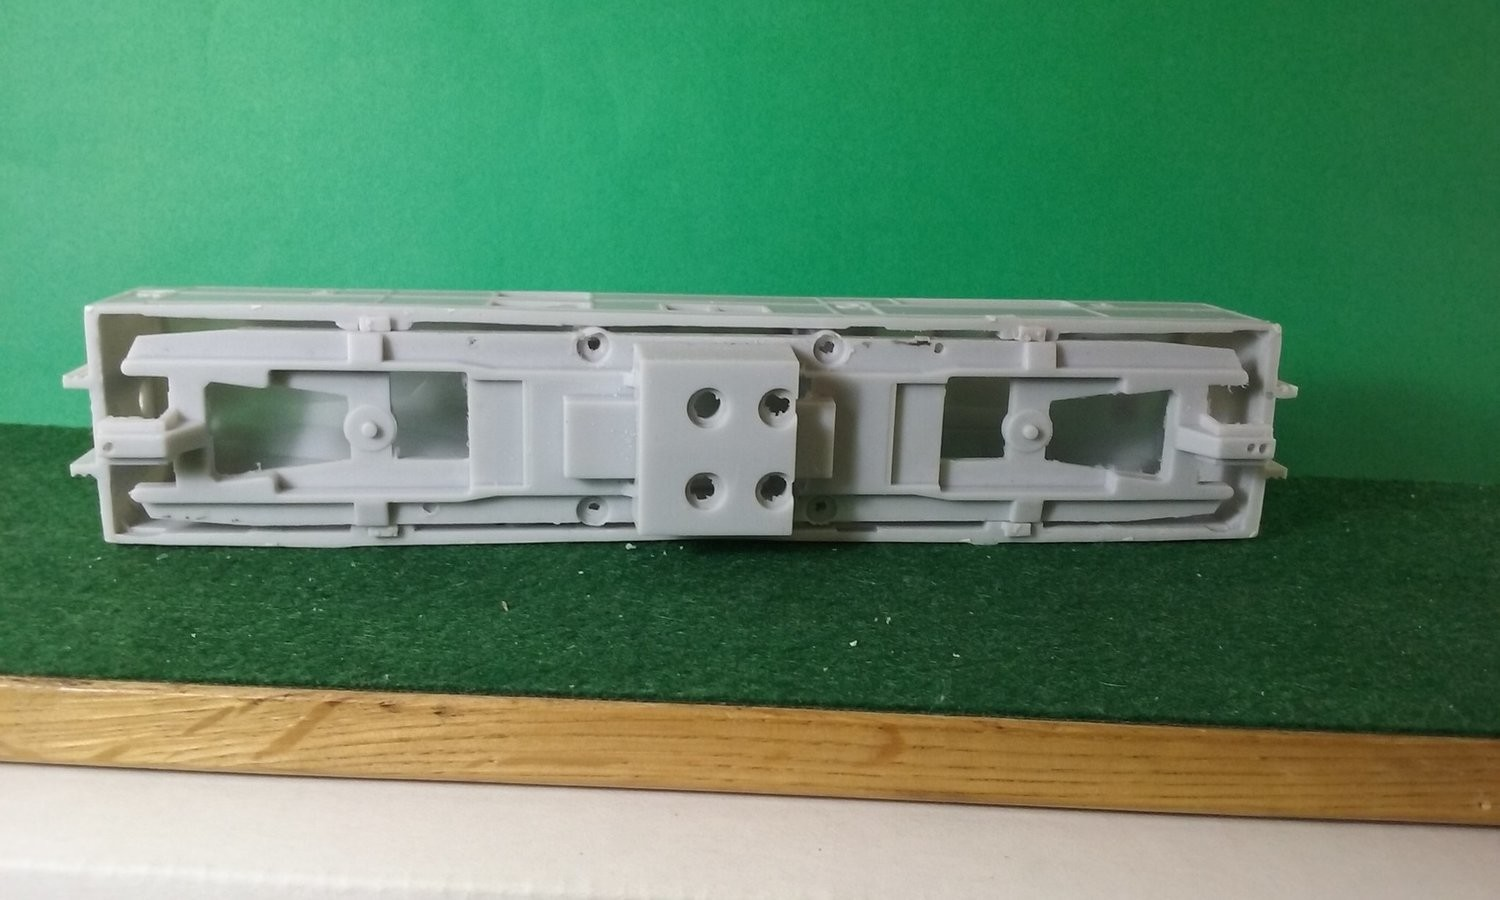 HO Scale DR-44-1500 Chassis Frame, HO Scale Trains, by Pacific Northwest Resin